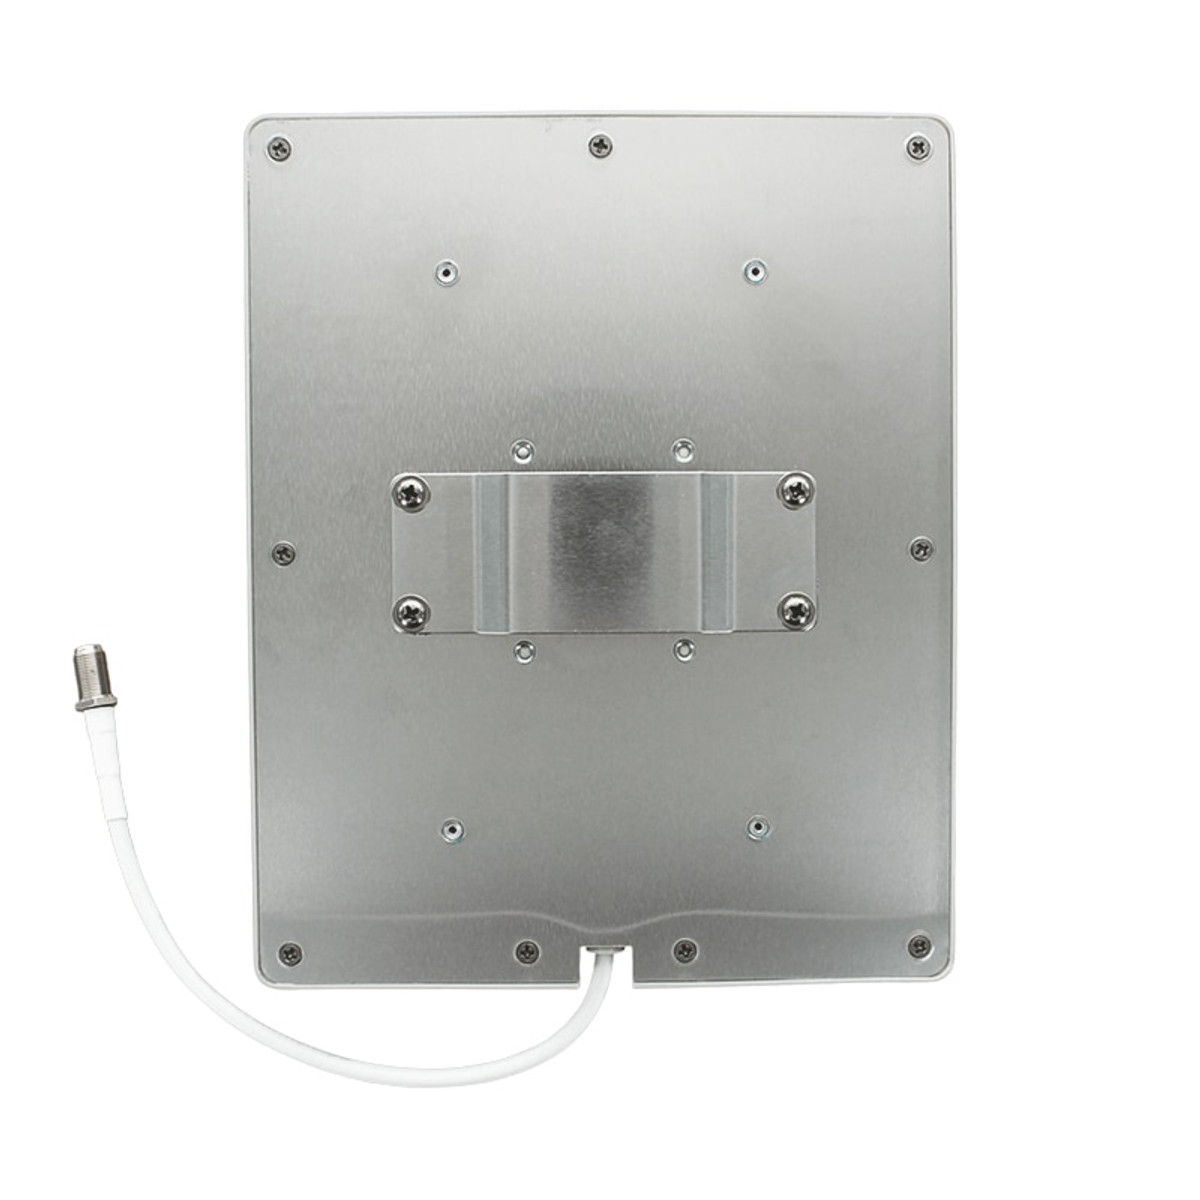 weBoost (Wilson) 311155 Panel Antenna w/Wall Mount, wide-band 75 Ohm